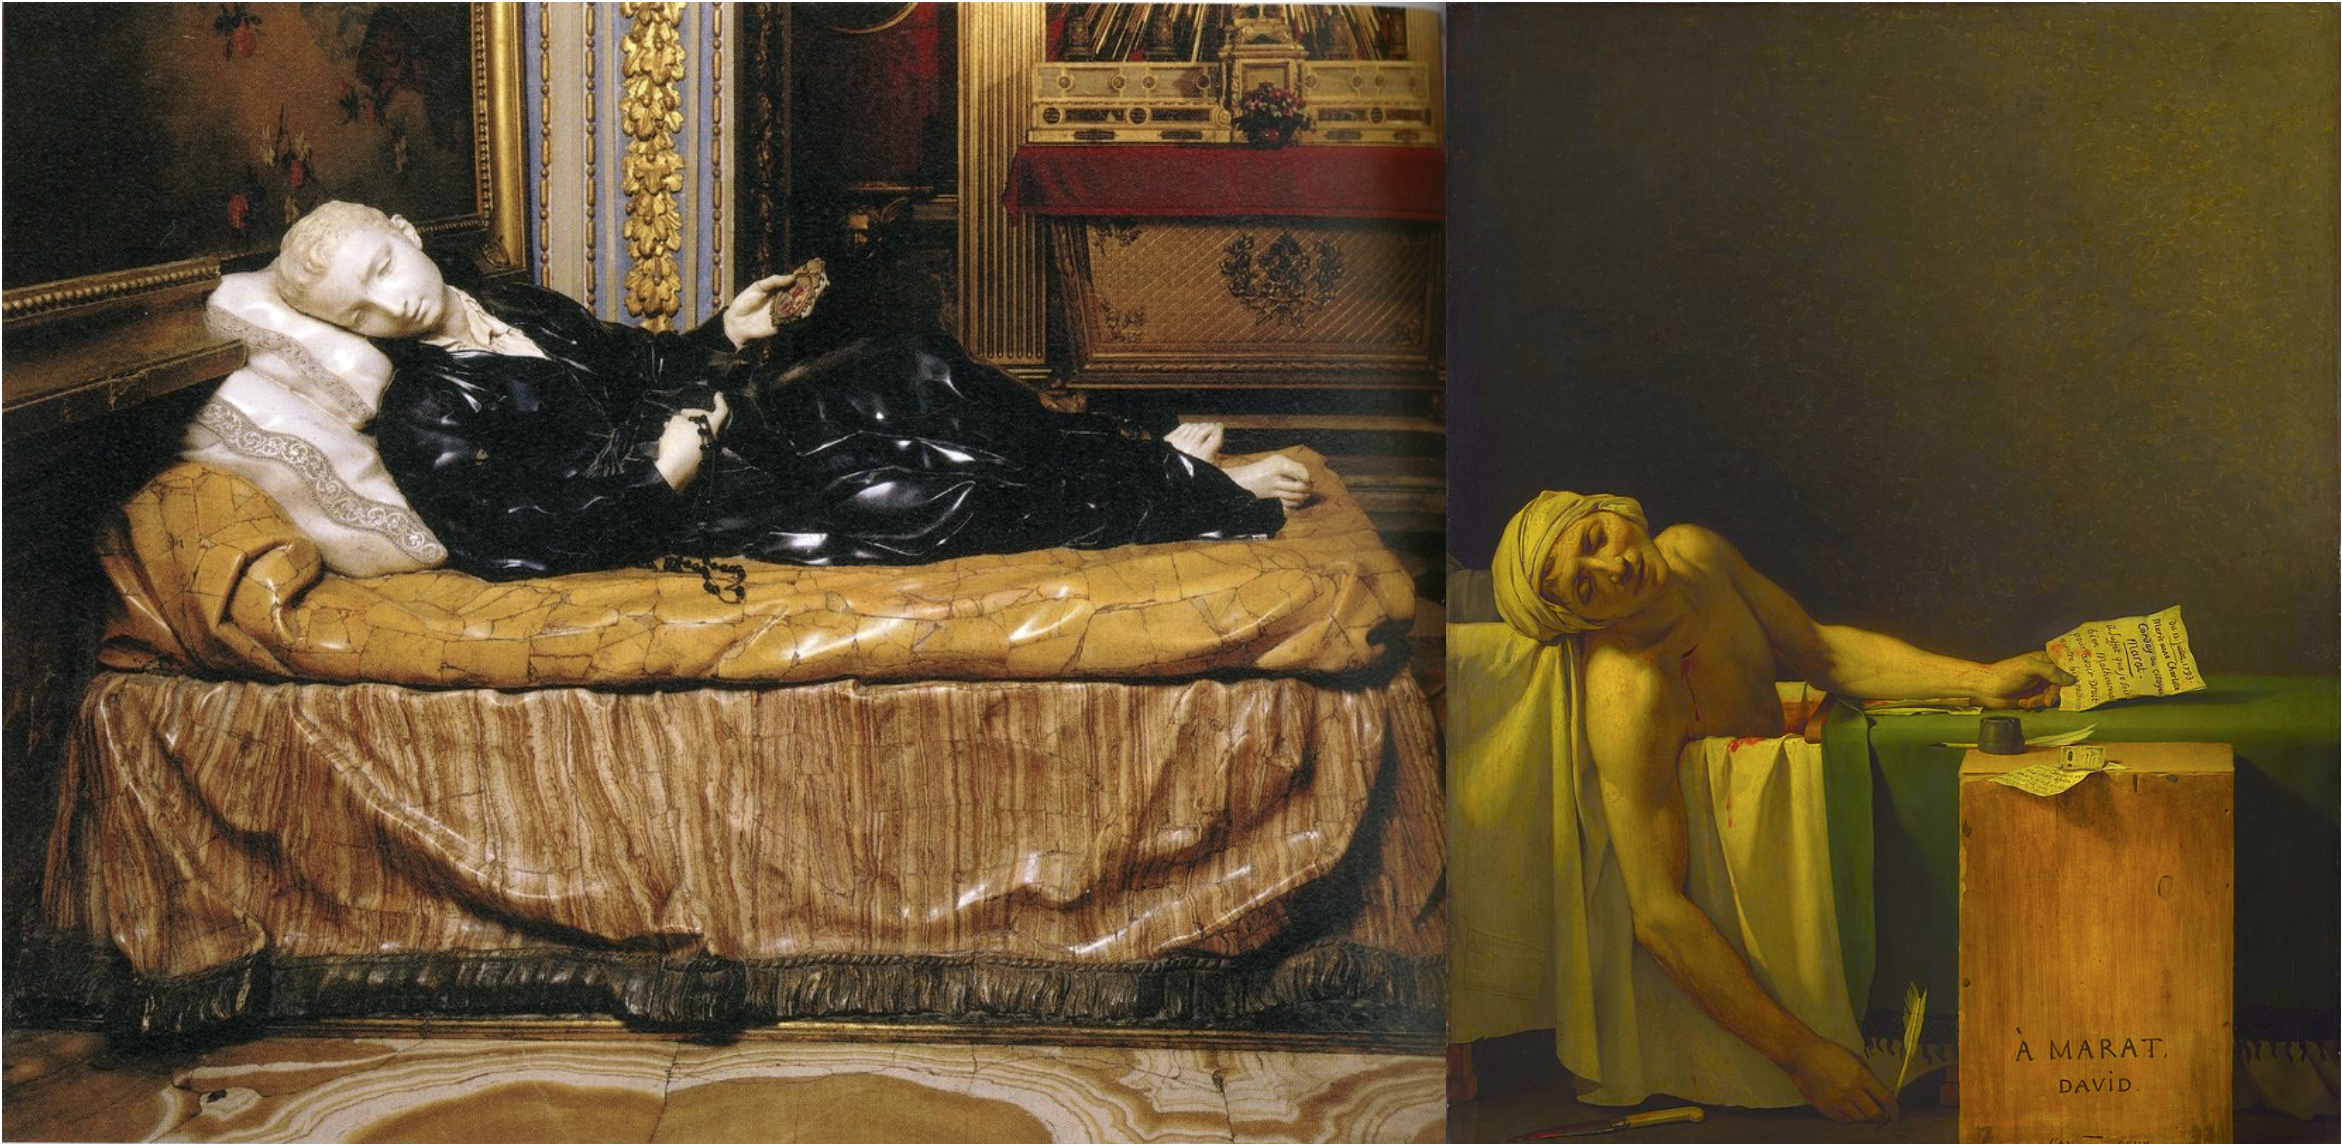 On the left, sculpture of Stanislas Kotska. On the right, painting of the death of Marat in his bathtub.